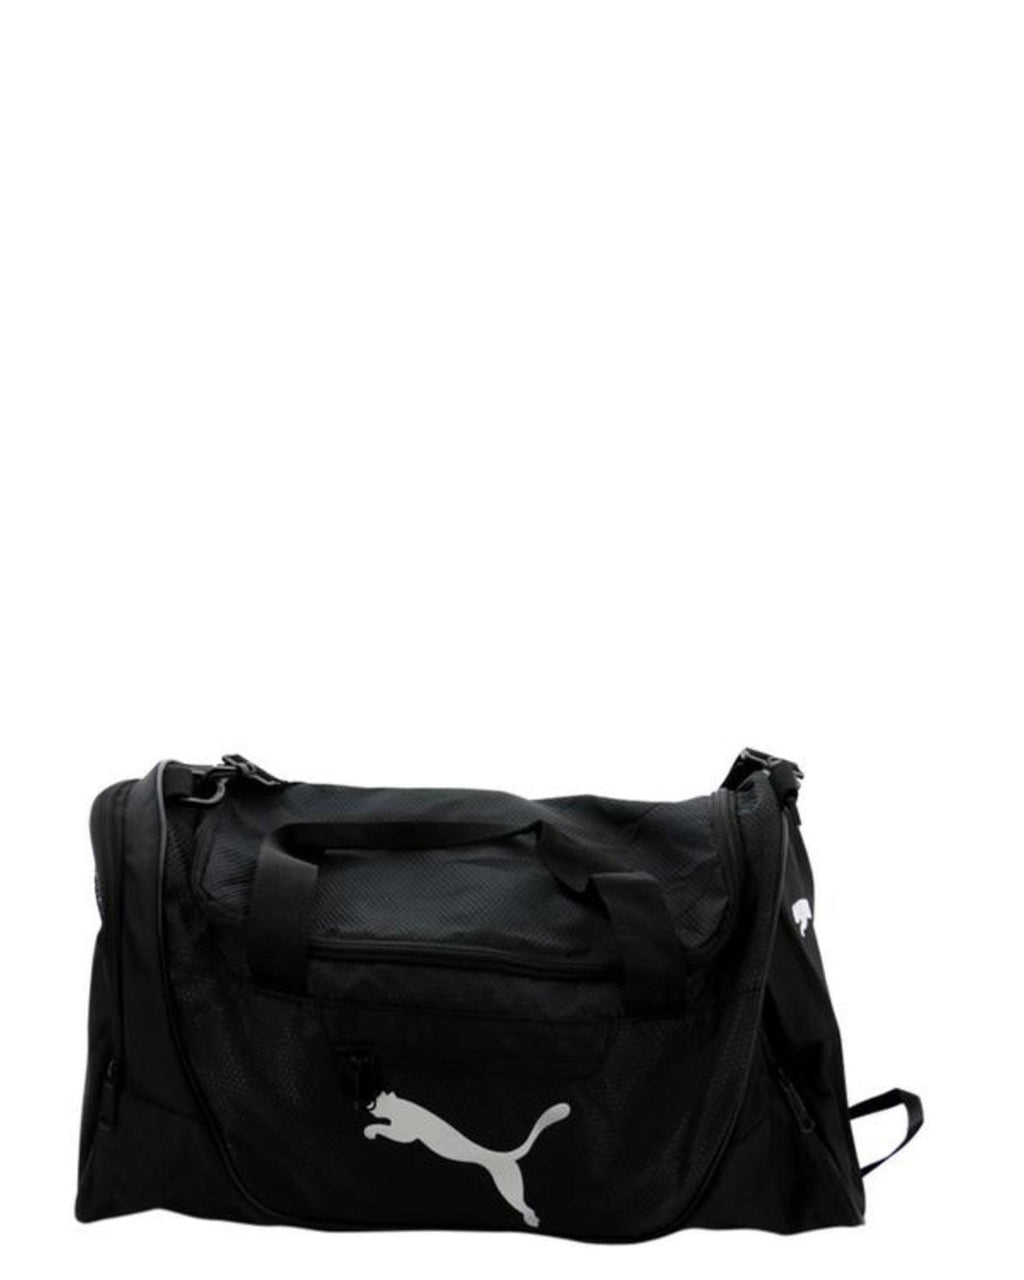 Contender 21 Inch Duffle Bag